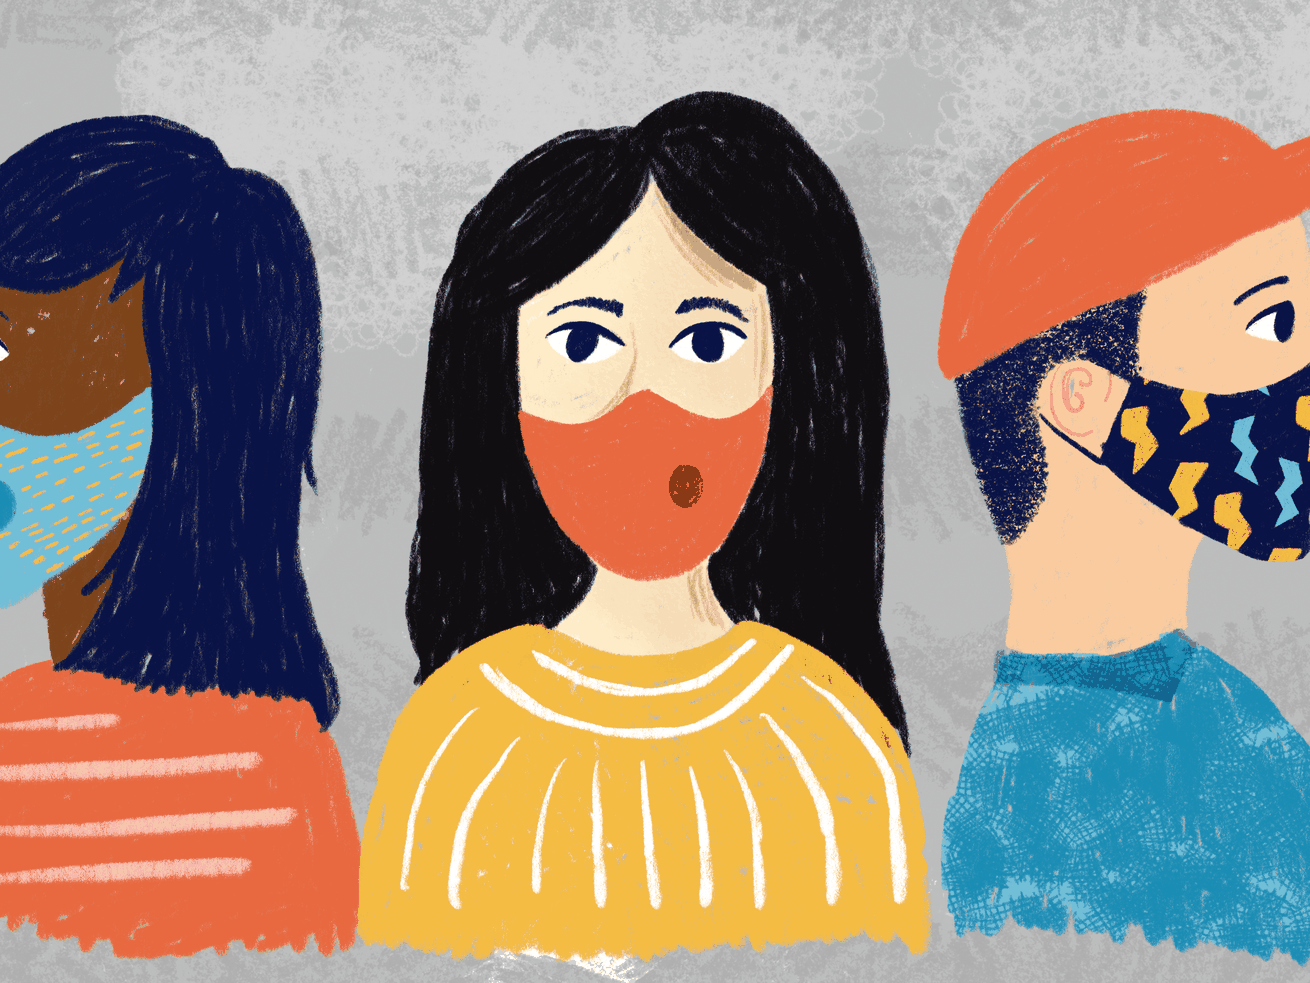 Air filtering masks are already popular across Asia, but will they become common in the US?